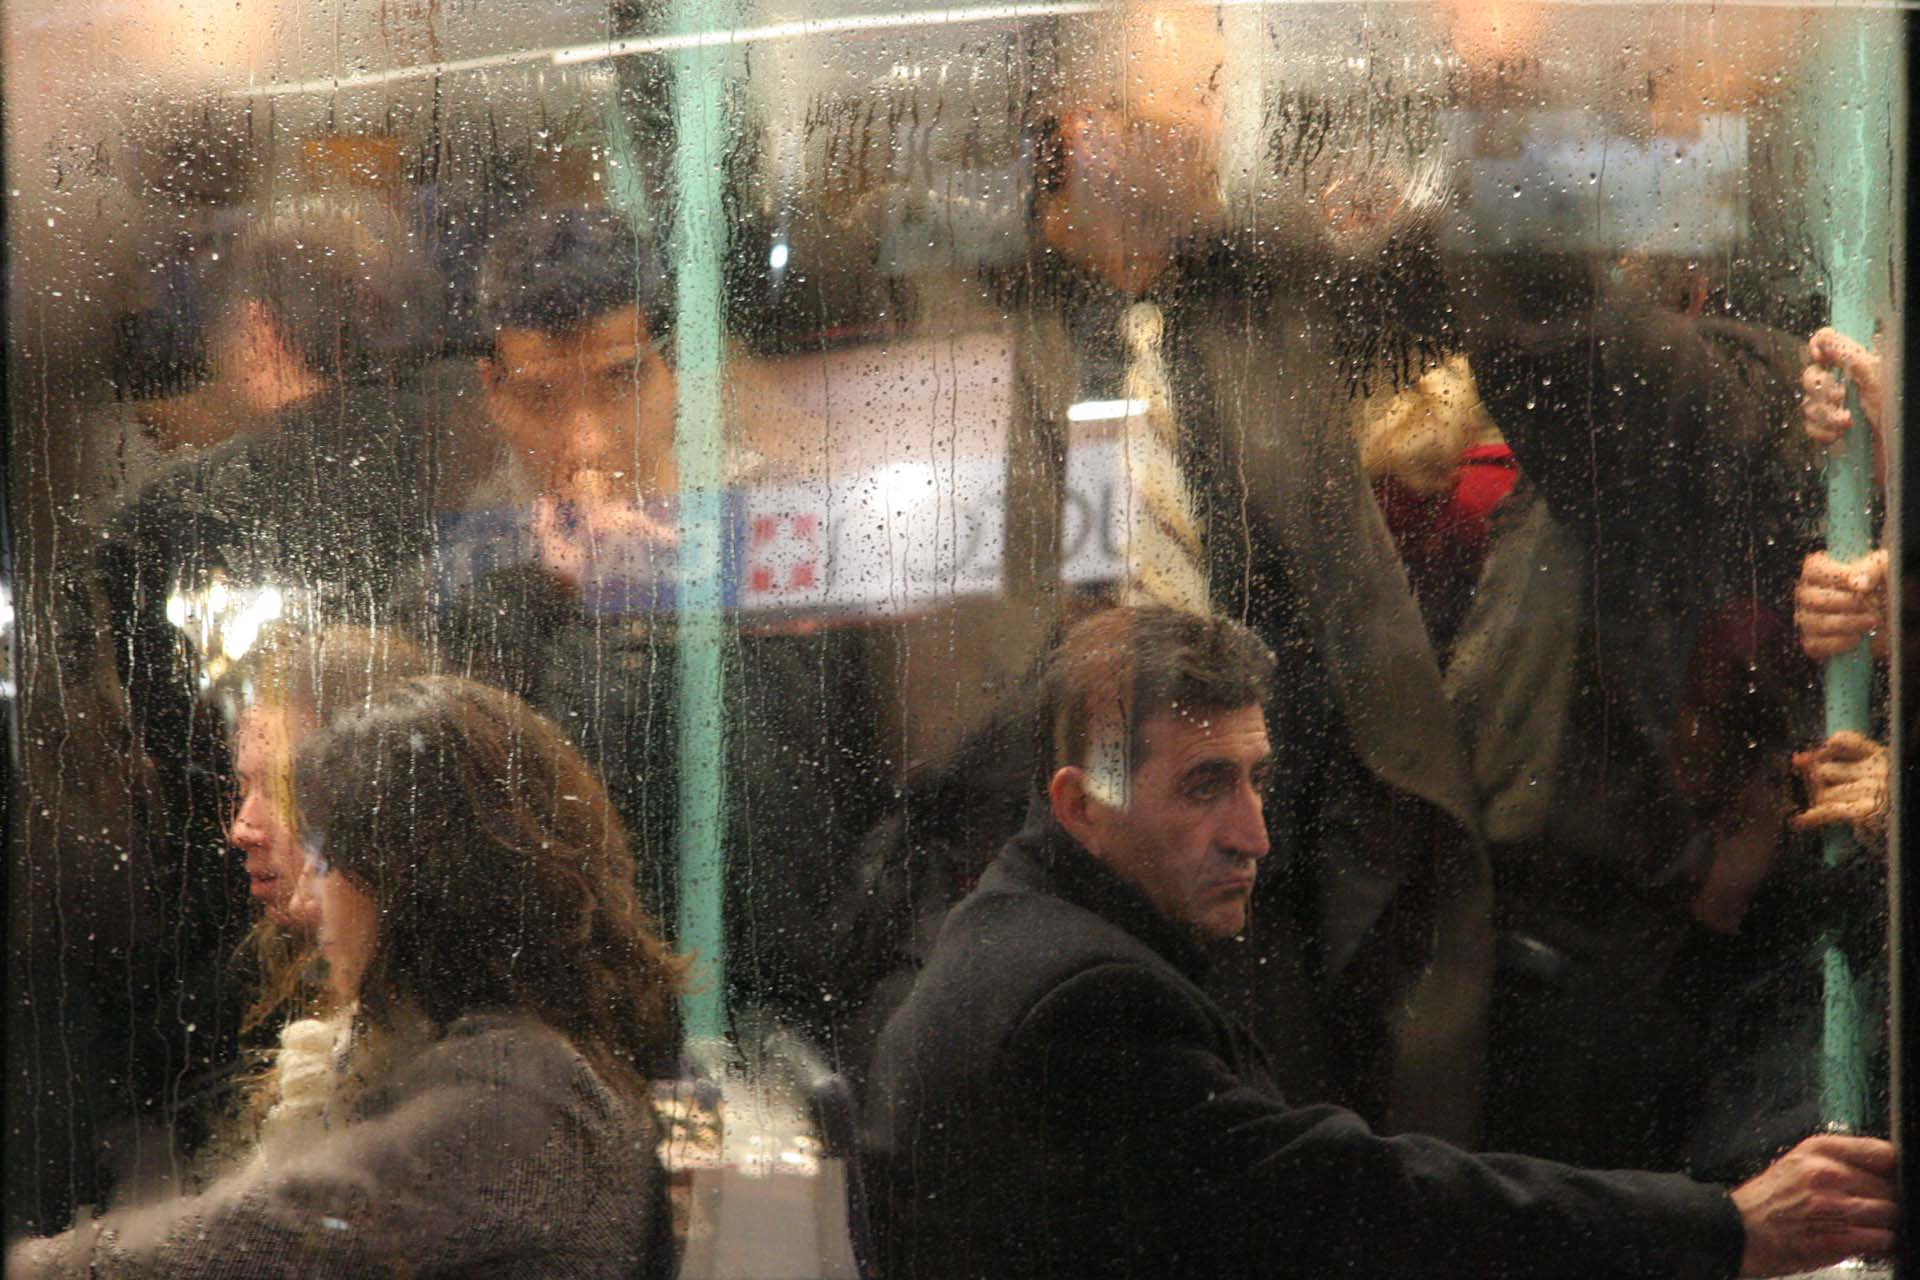 Cold rainy night, taking the tram in Çemberlitaş